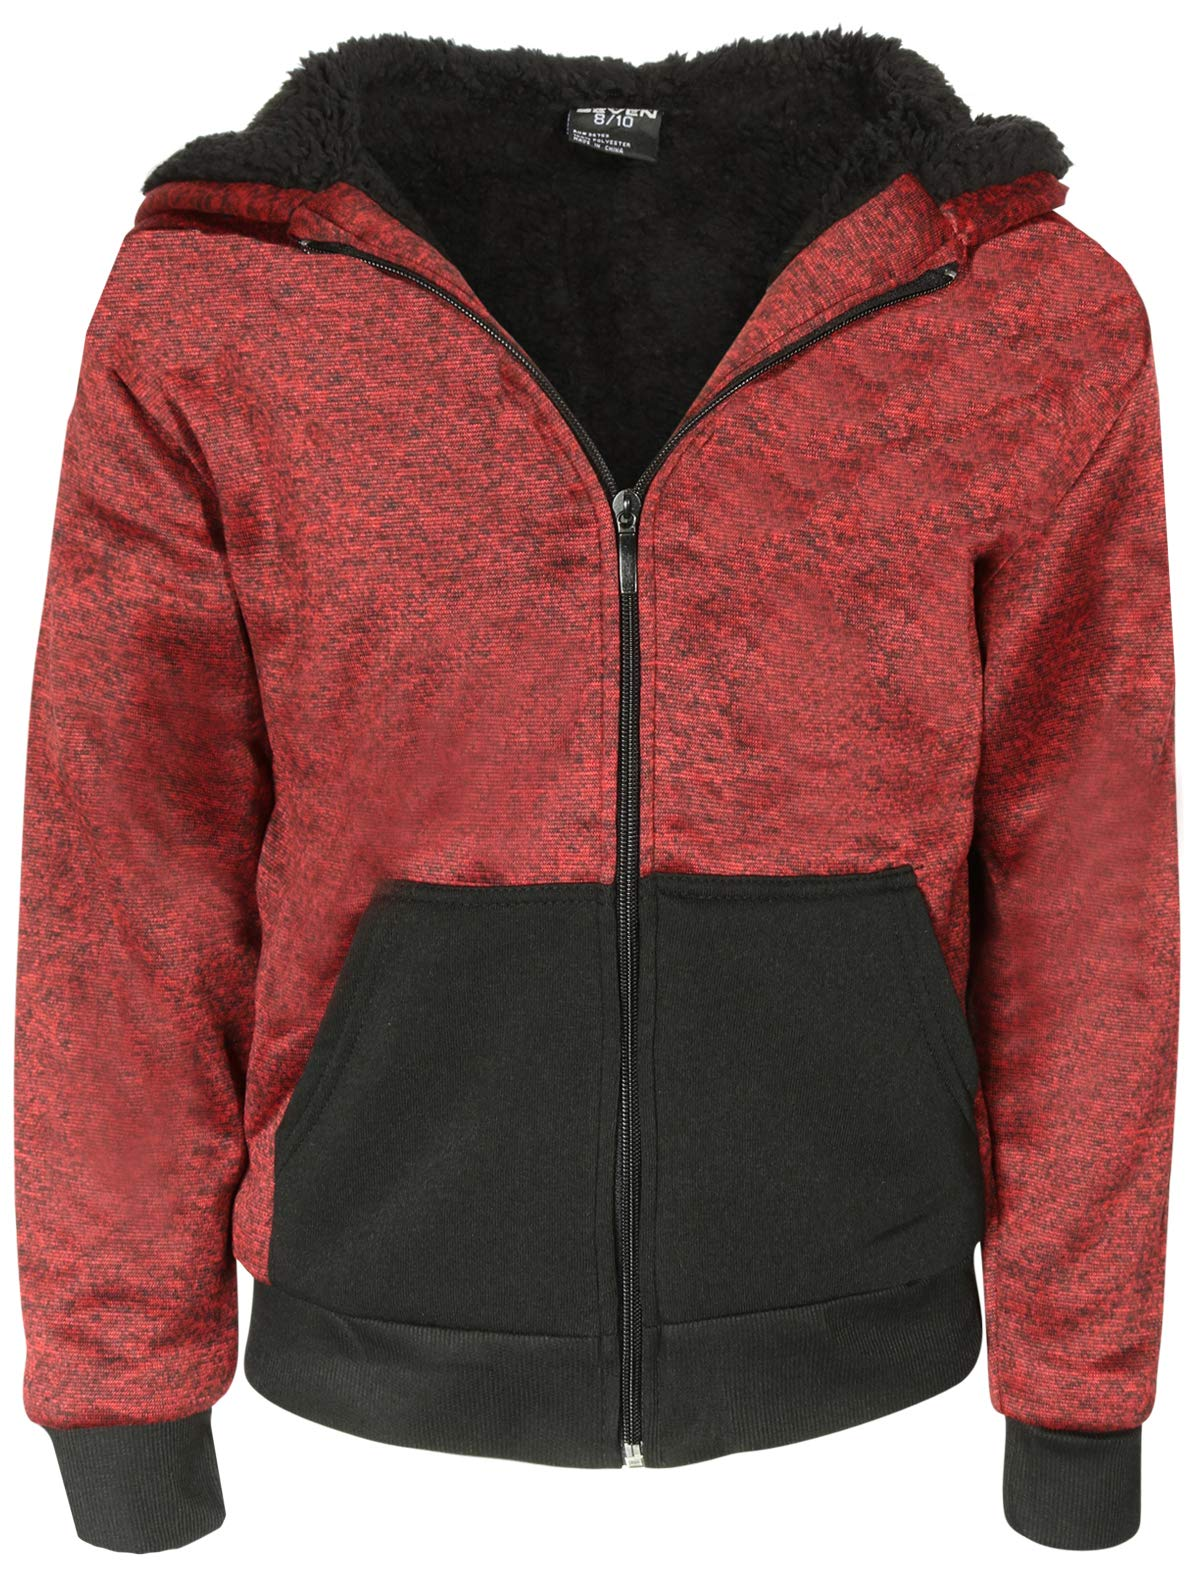 Quad Seven Boys Fleece Full-Zip Hooded Sweatshirt with Sherpa Lining (Marled Red, 4)'